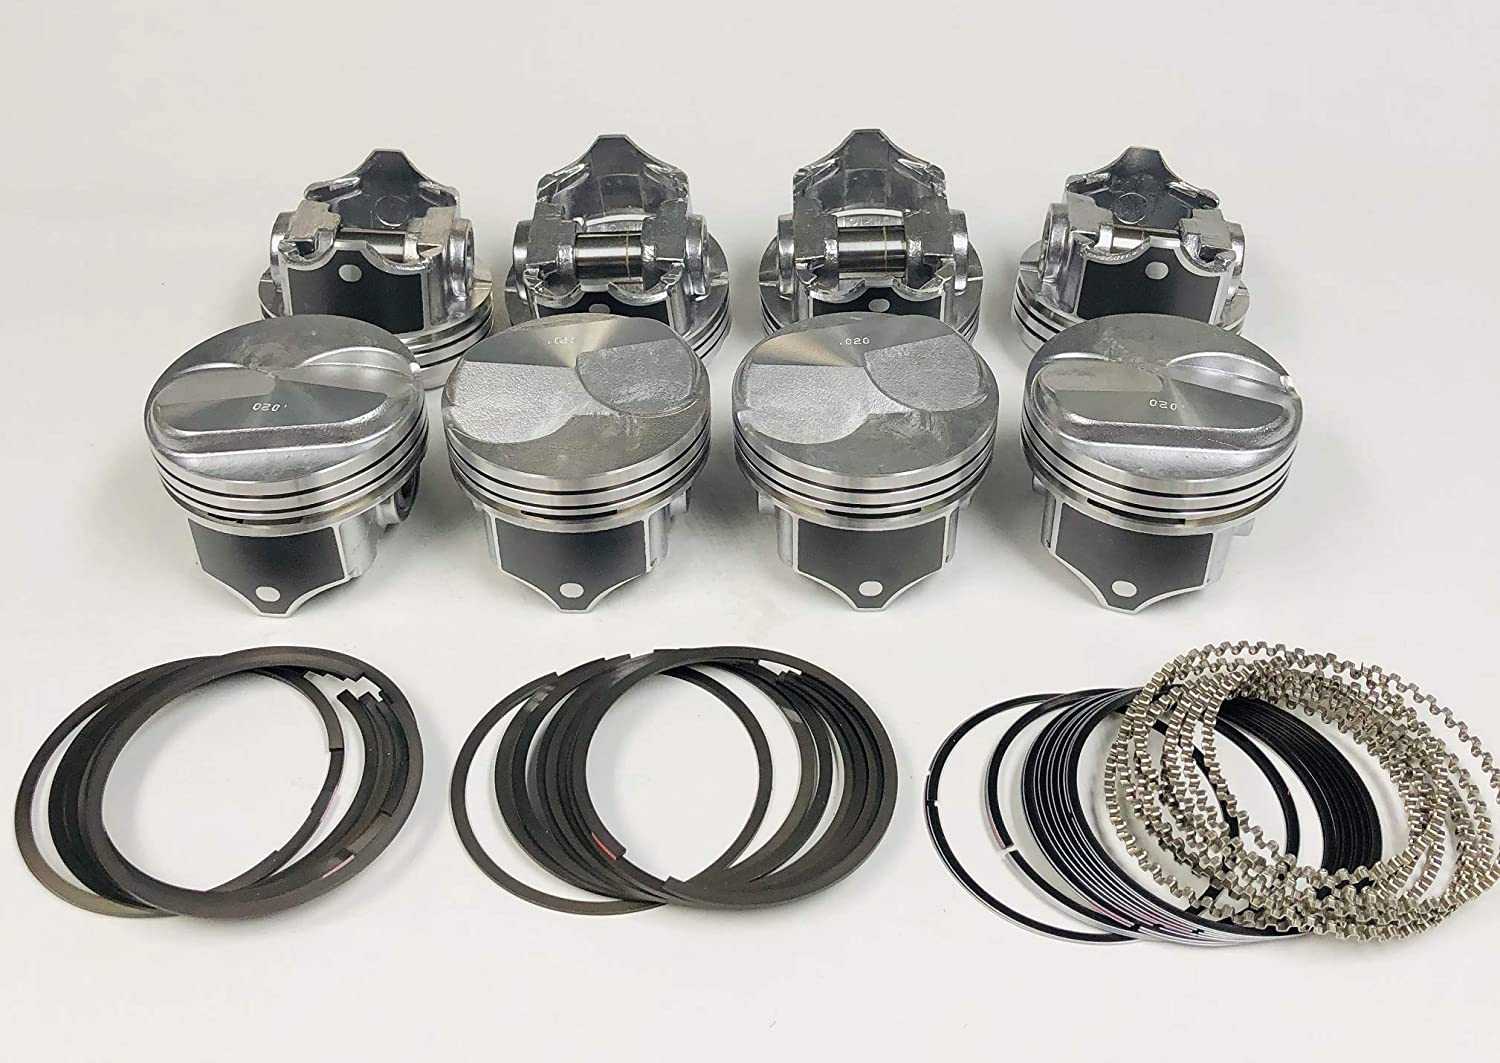 +Moly Rings Kit .030 Chevy 7.4//454 Silvolite Hypereutectic 30cc Dome Pistons 8